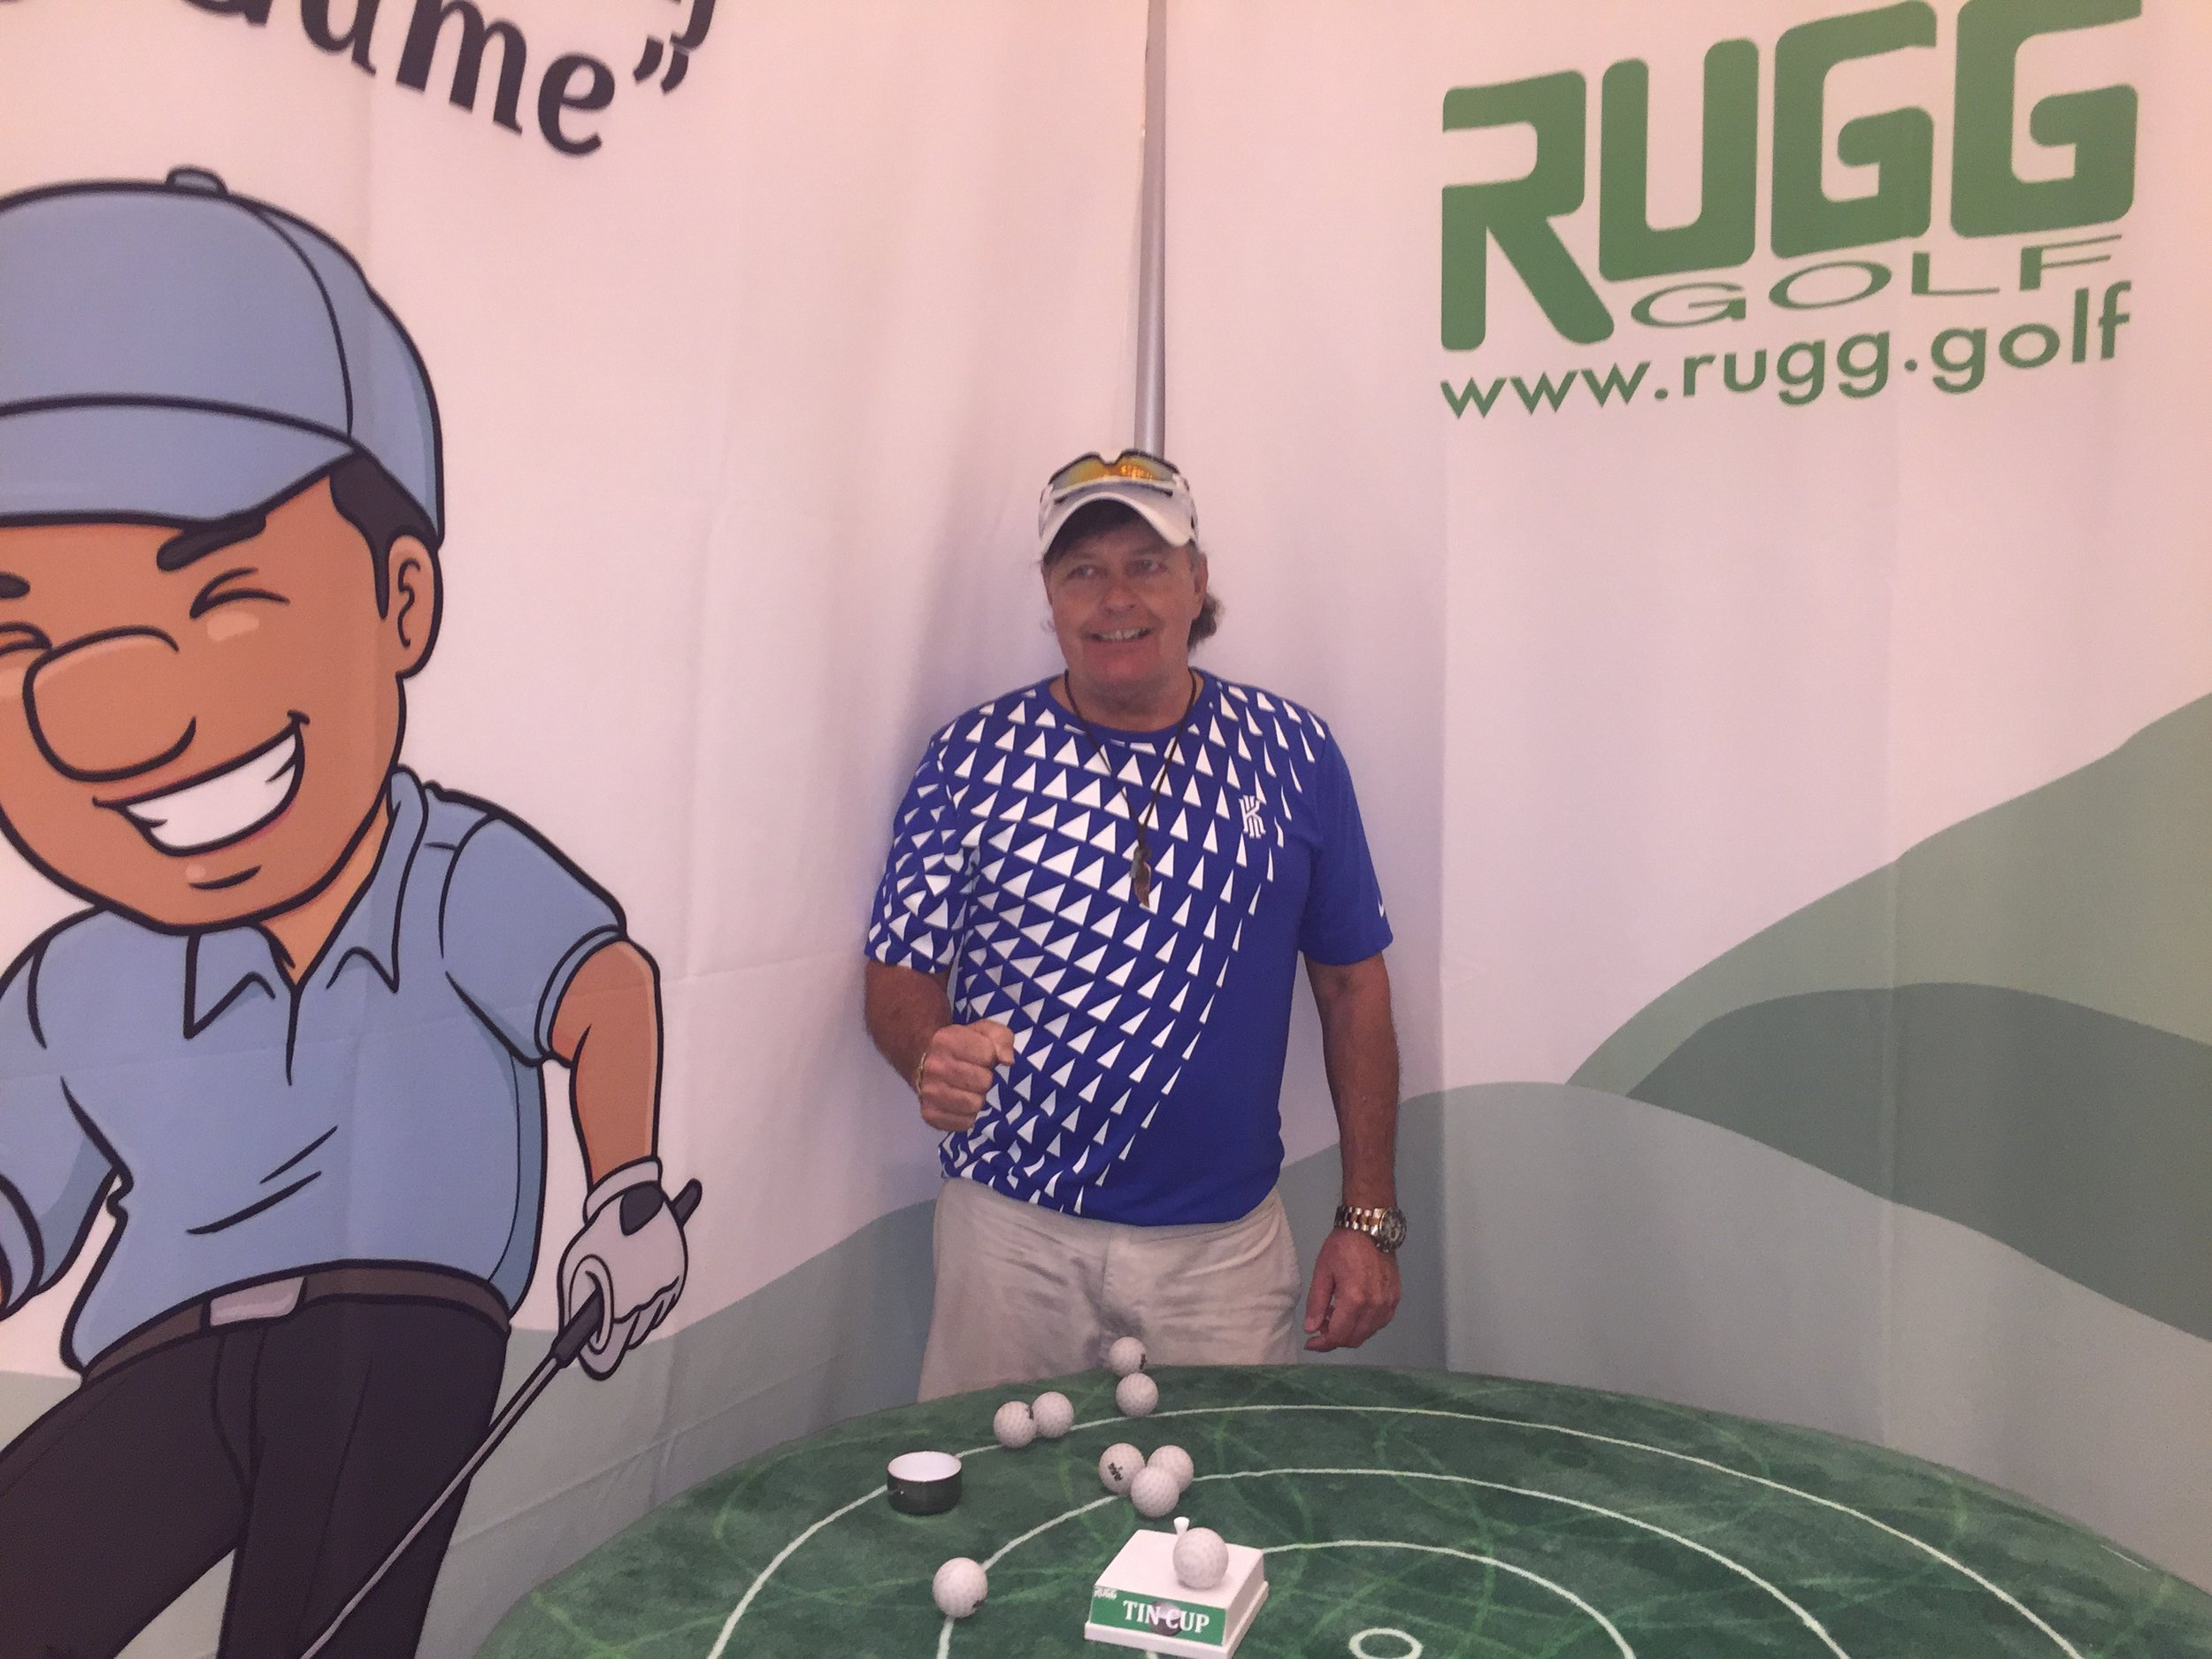 Tommy scored one Tin Cup with two more shots in the -2 Eagle ring, and put the remaining six shots in a tight cluster on this tough tabletop 7 yard hole.